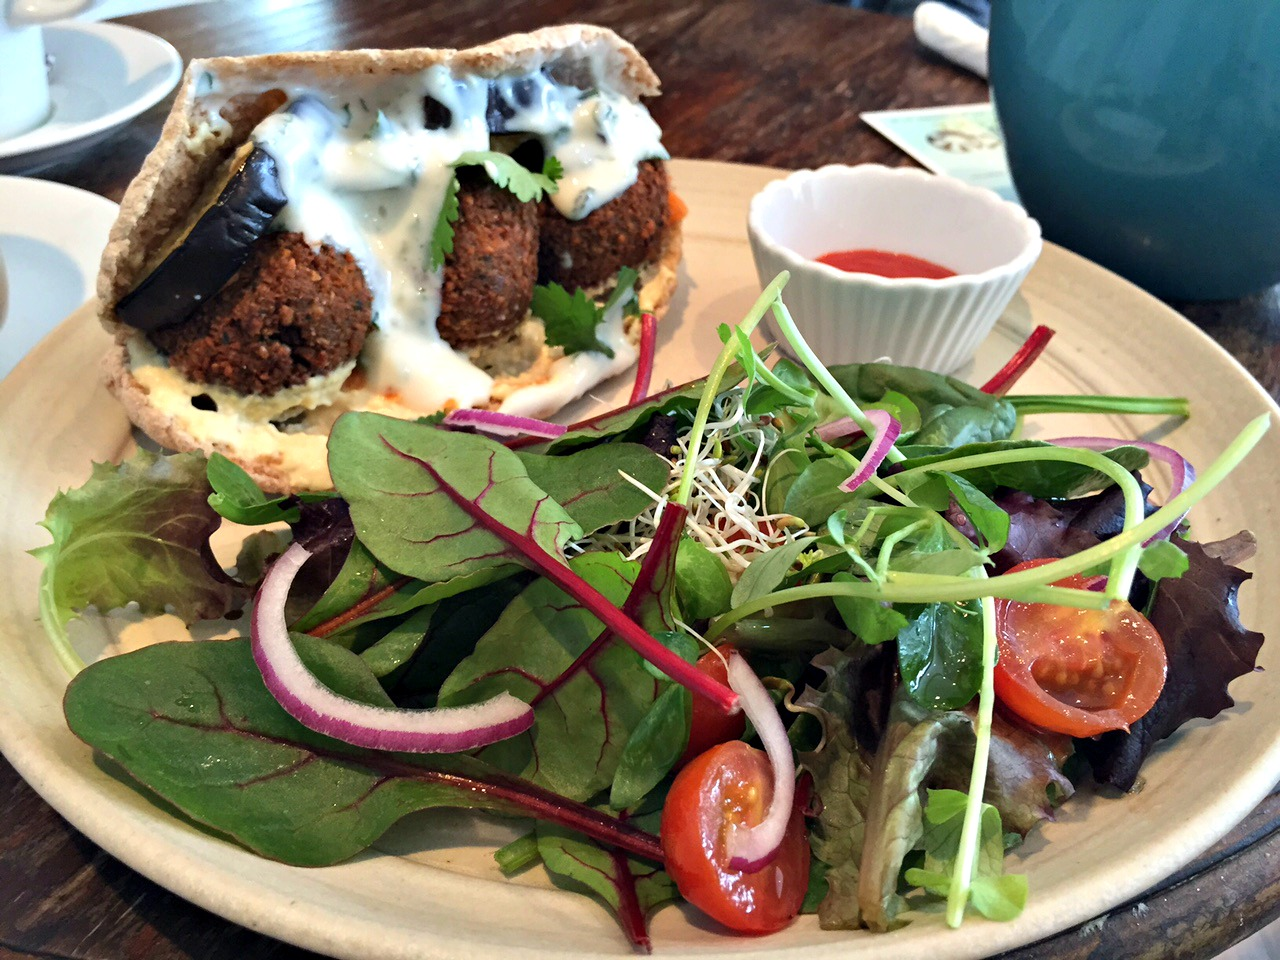 Vegan falafel at Good Apple Cafe in Sunderland